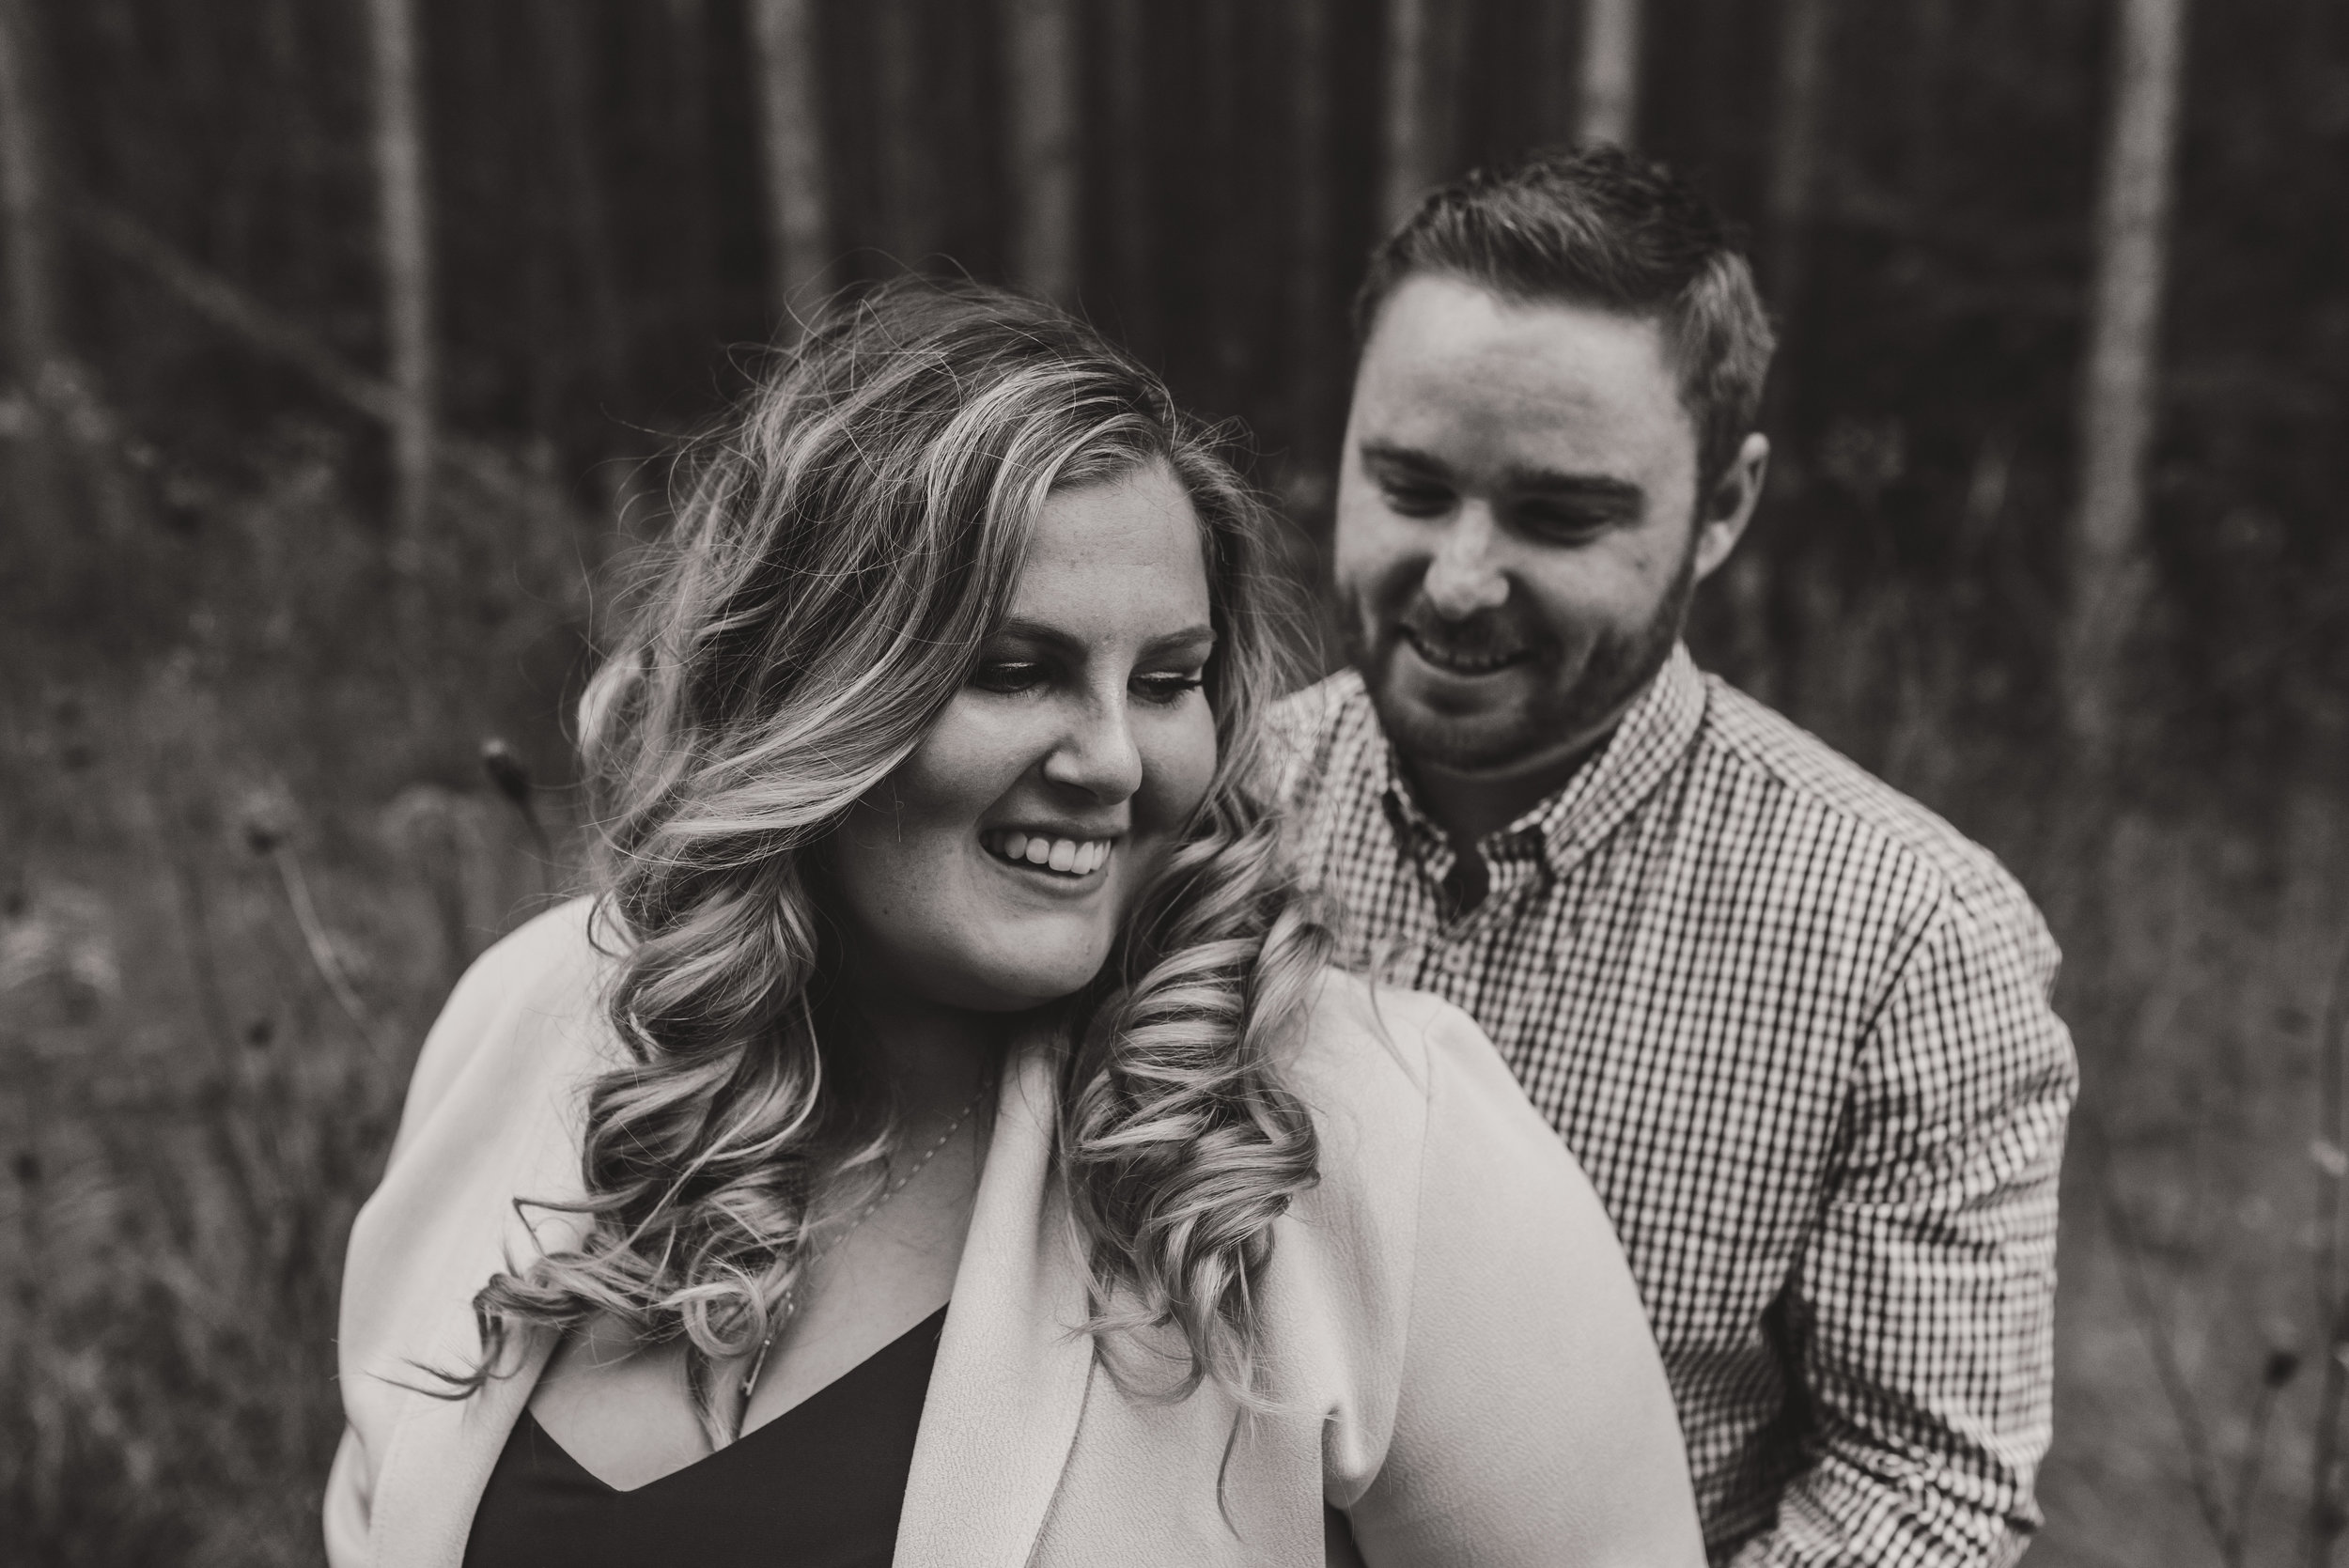 JerricaJordan-Engagement-October302017-SneakPeek-00003bw.jpg